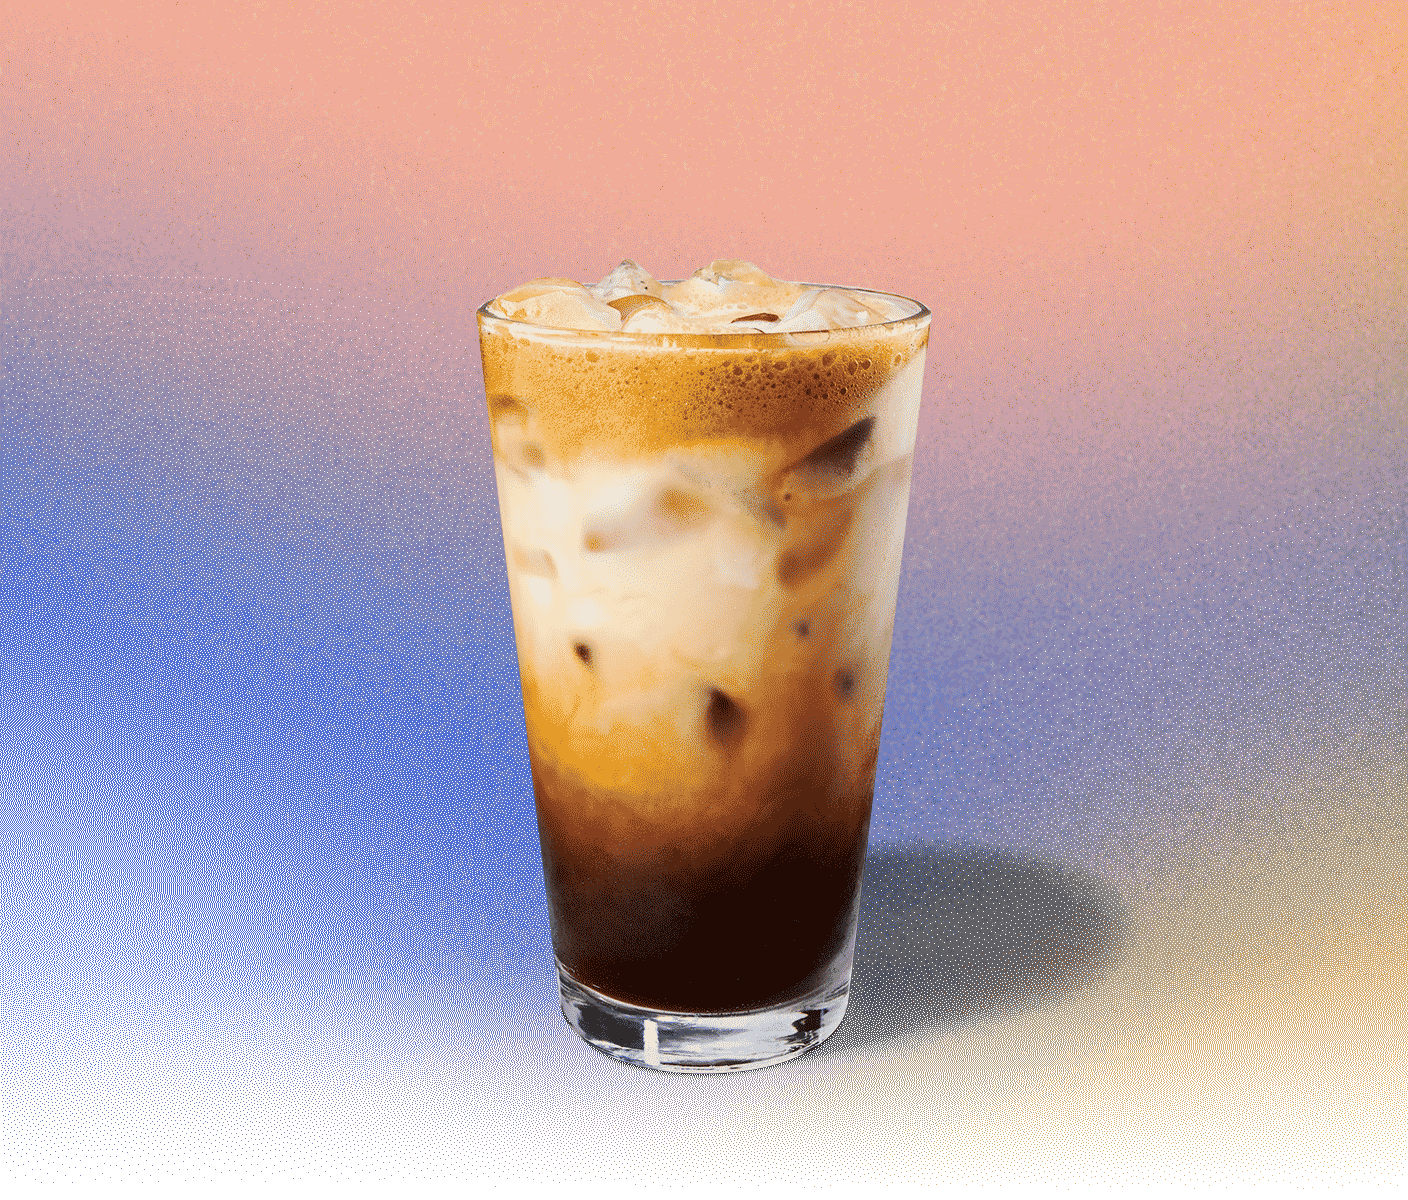 Tall iced espresso drink in a glass with creamy portion near the top